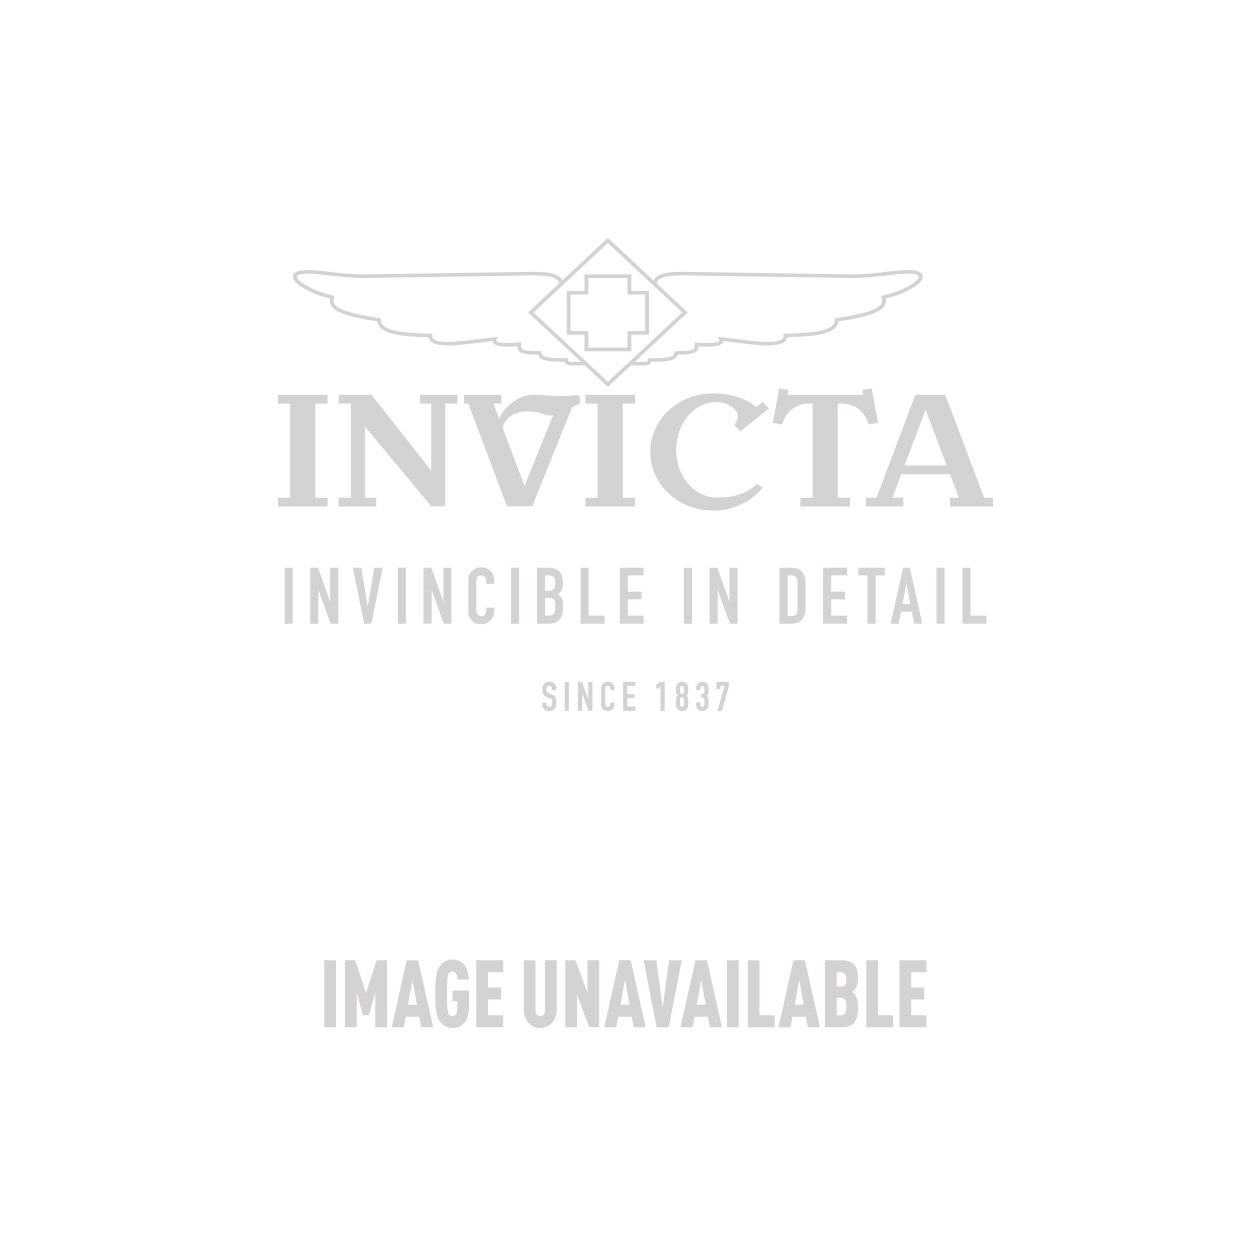 Invicta Excursion Swiss Made Quartz Watch - Red, Titanium, Stainless Steel case with Grey tone Silicone band - Model 18561